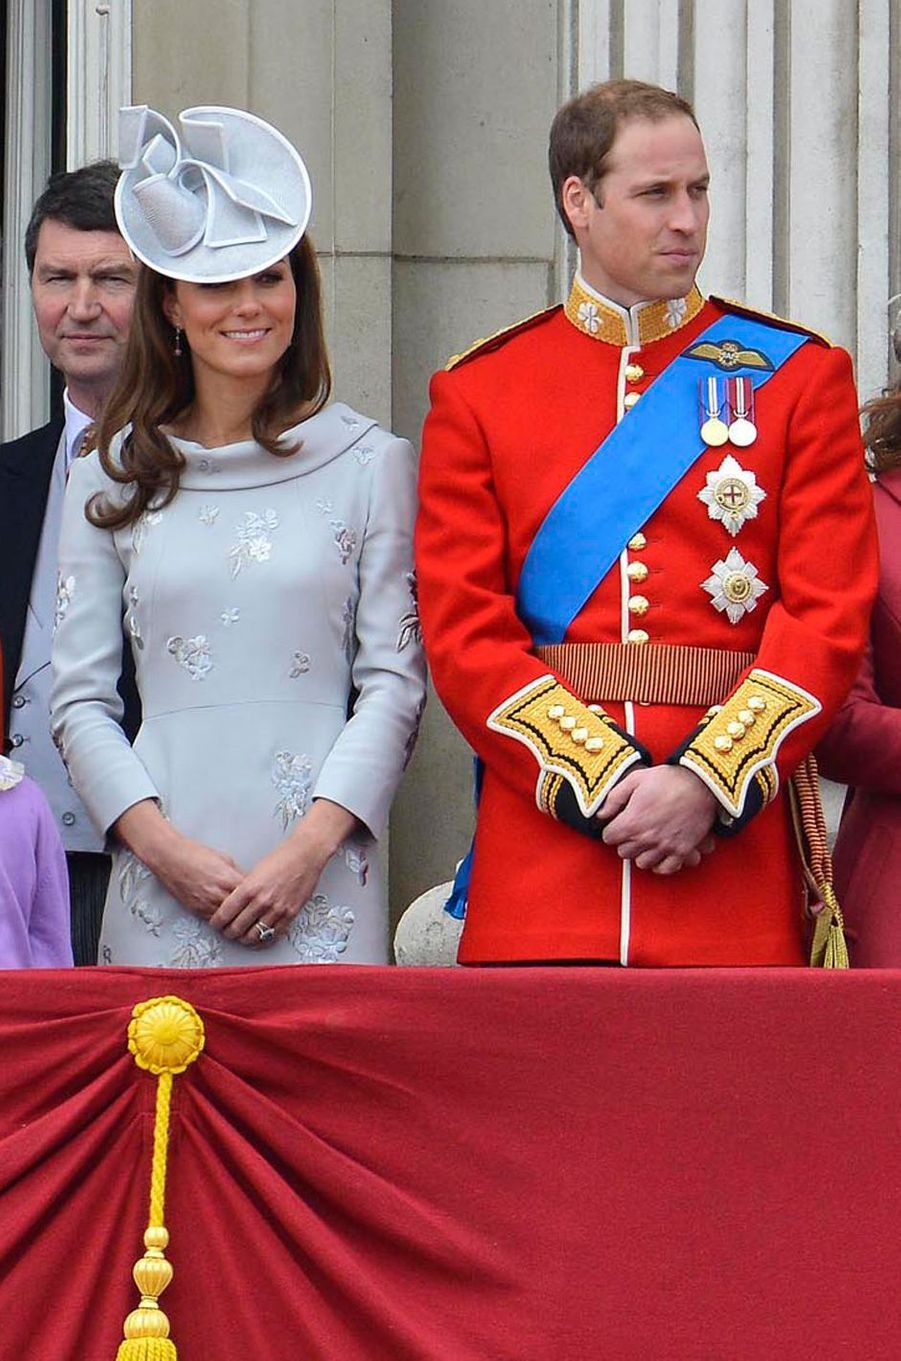 La duchesse Catherine de Cambridge à la cérémonie Trooping the Colour à Londres le 16 juin 2012